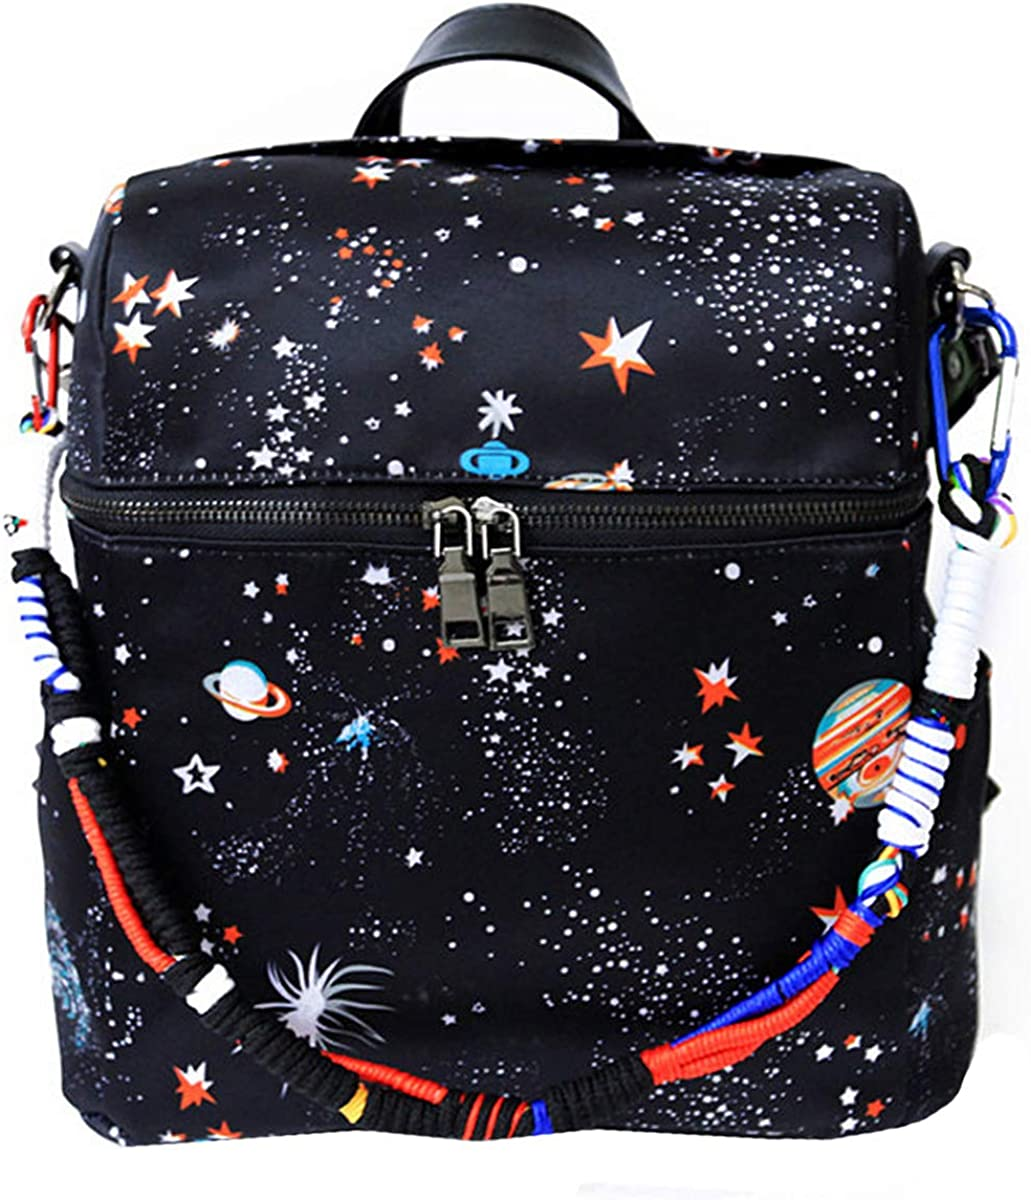 Van Caro Backpack – Multifunction Daypack Casual Travel, Black, Size ONE SIZE